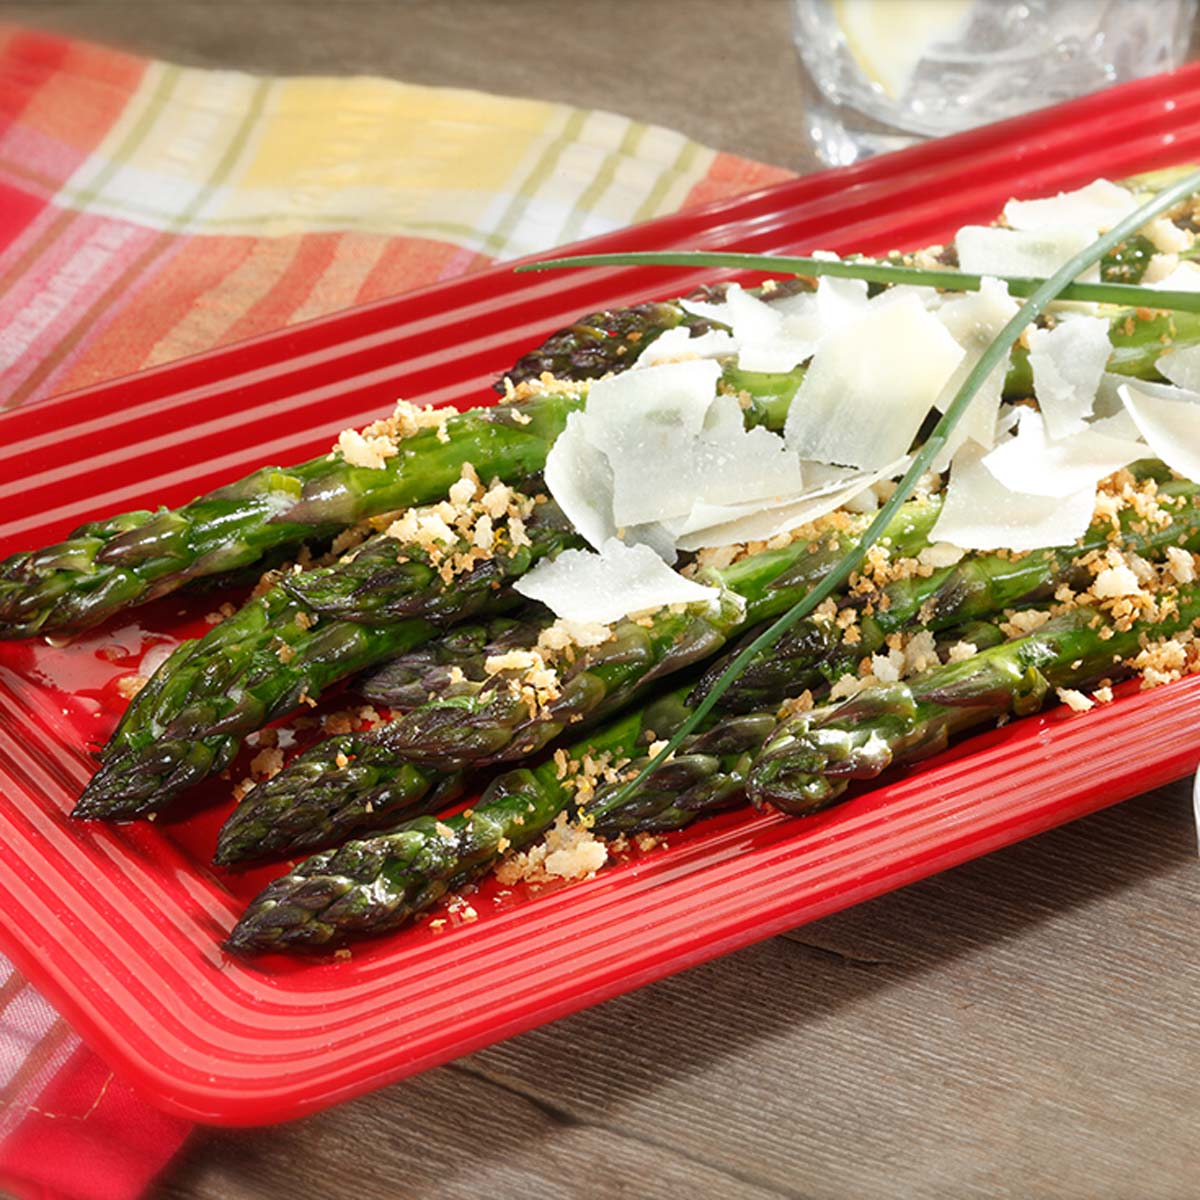 ... lemon vinaigrette and crumbs 25 20 4 asparagus with lemon vinaigrette